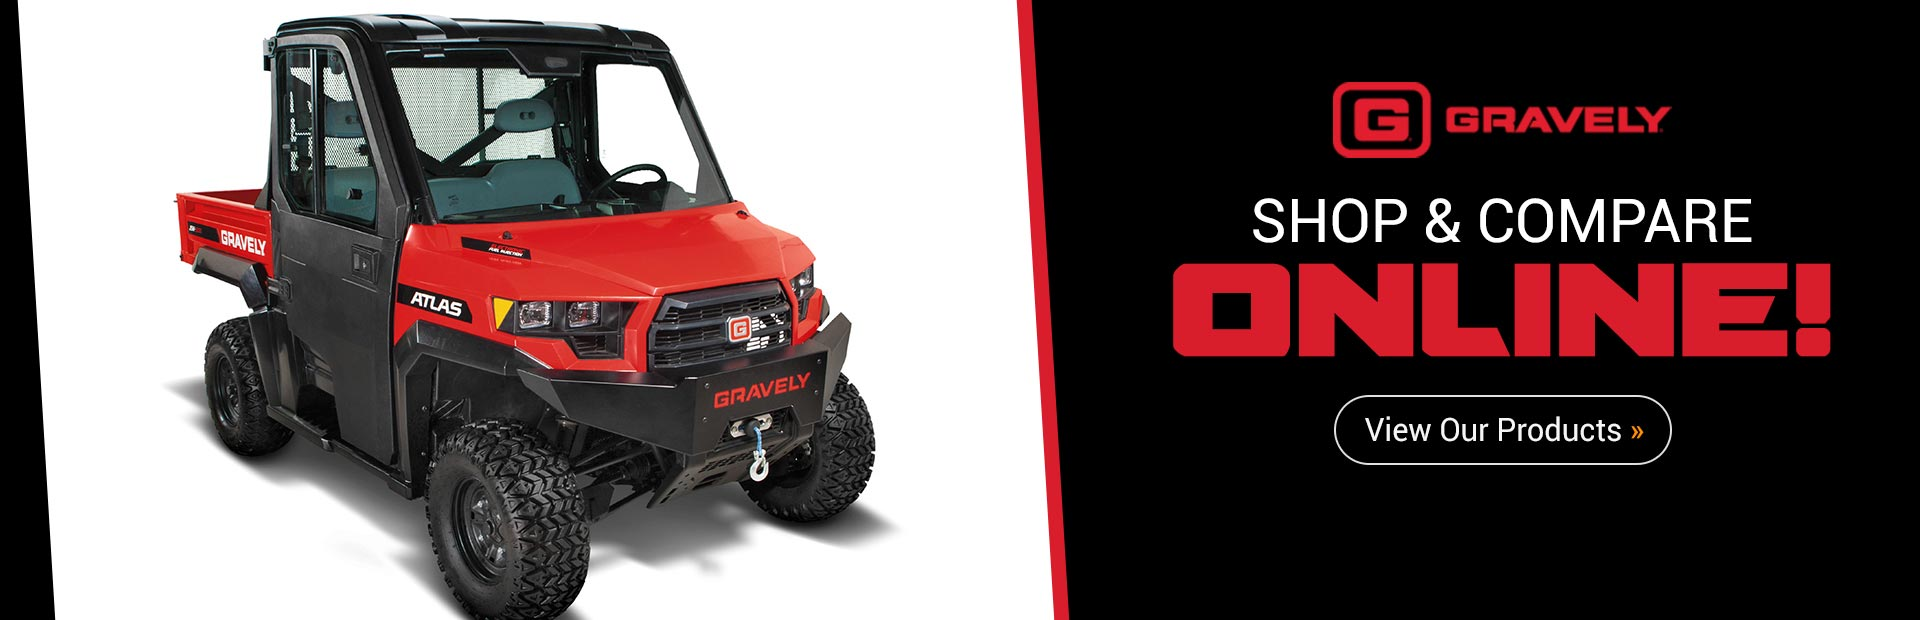 Gravely Equipment: Click here to view our products.